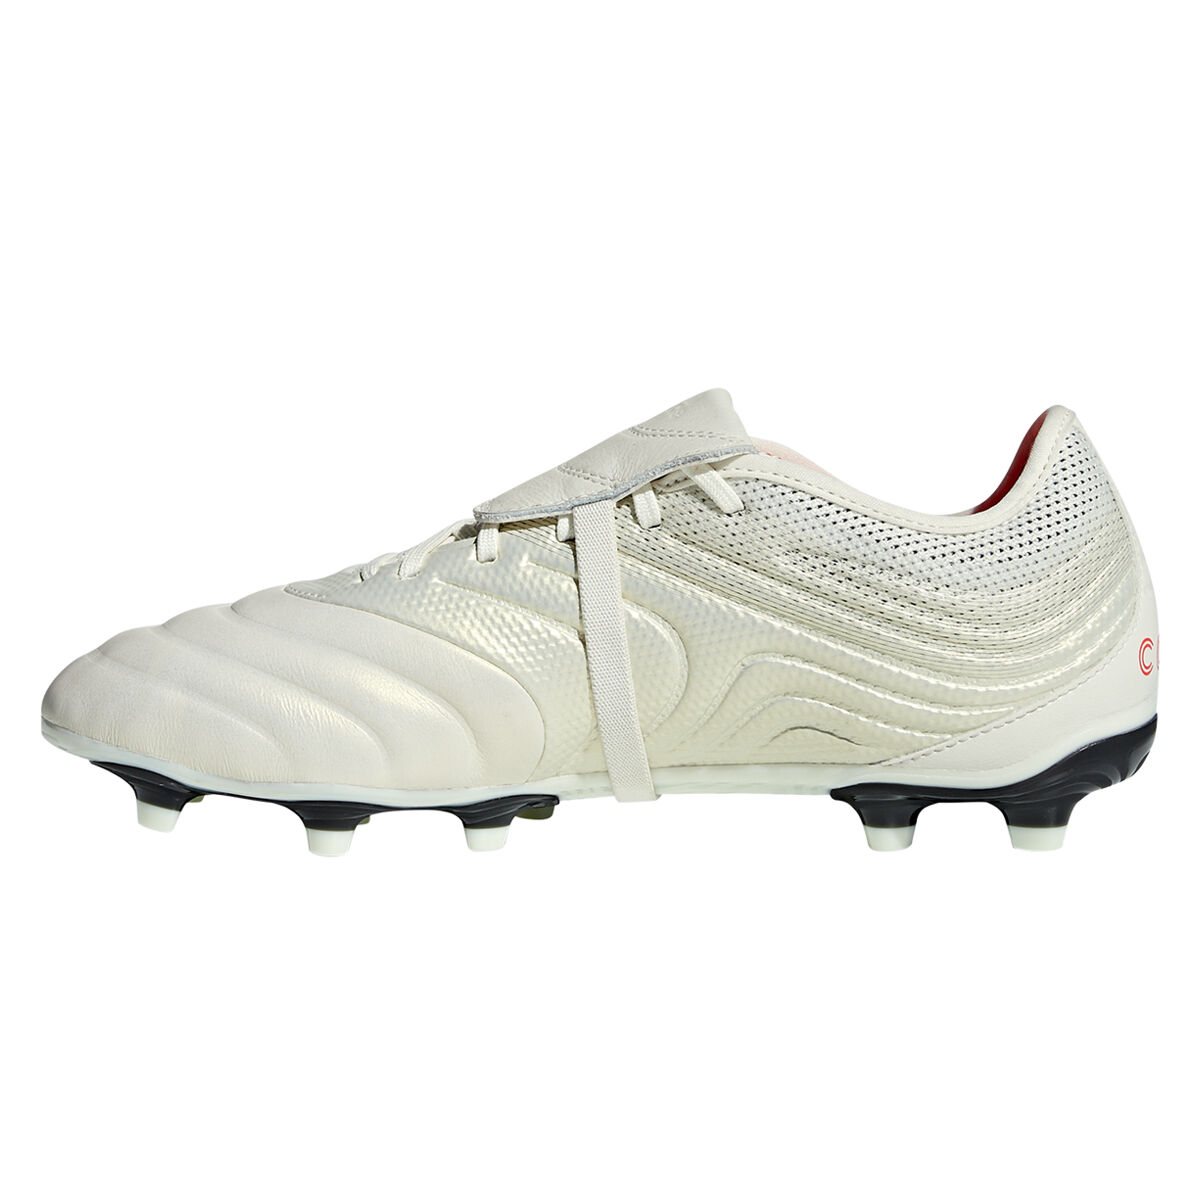 official photos b9835 a355c ... sale adidas copa gloro 19.2 mens football boots white red us 7 white  red 1d1dd 88ab5